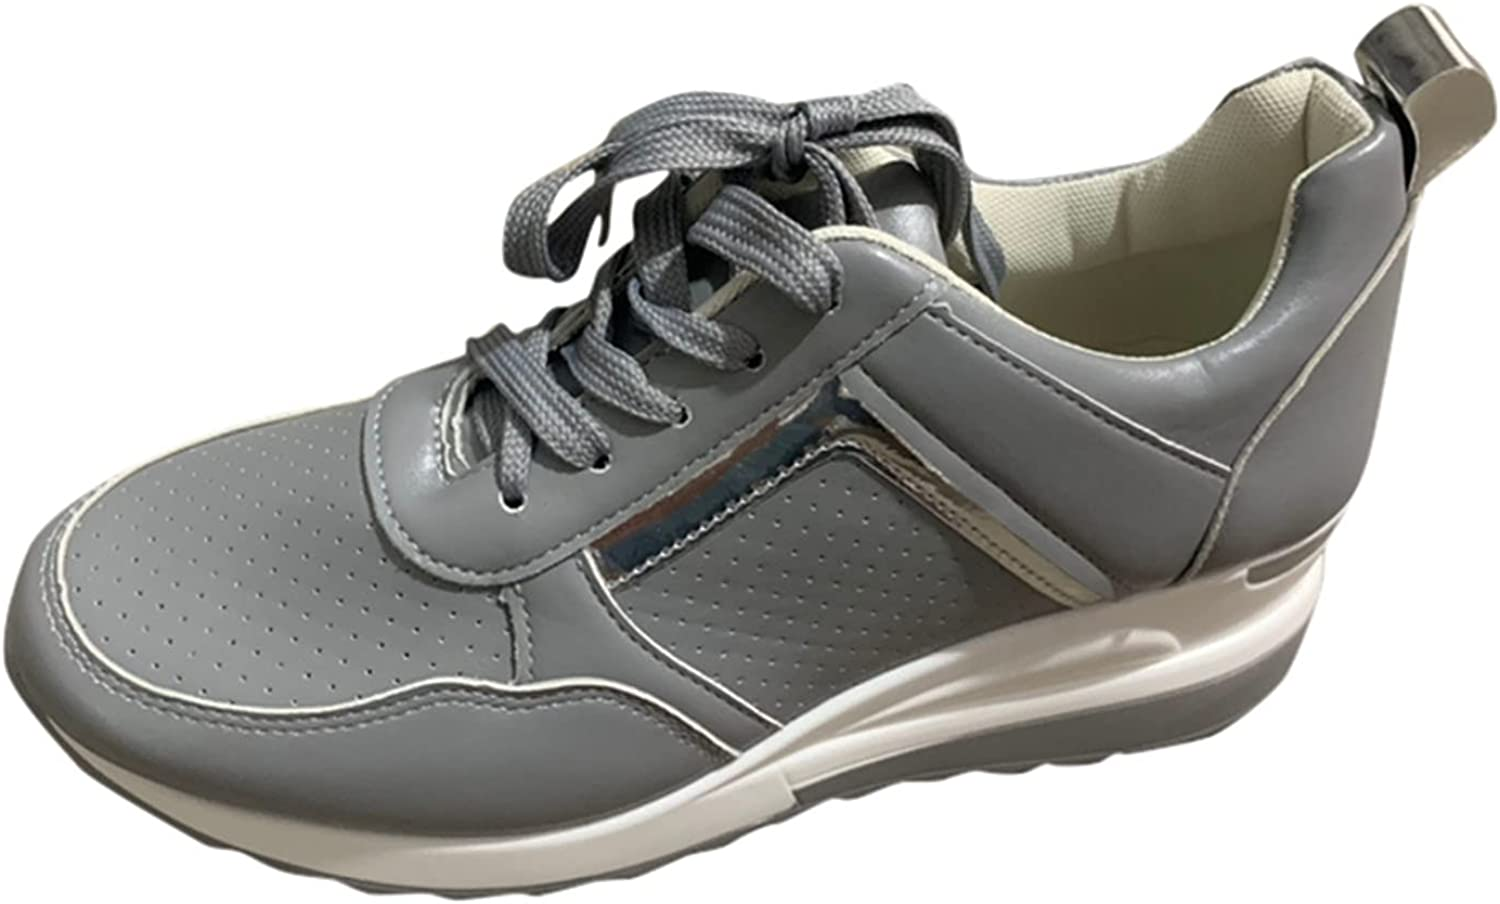 ZiSUGP Women's Walking Shoes Summer Lace-up Toe Round Japan 70% OFF Outlet Maker New Breathable